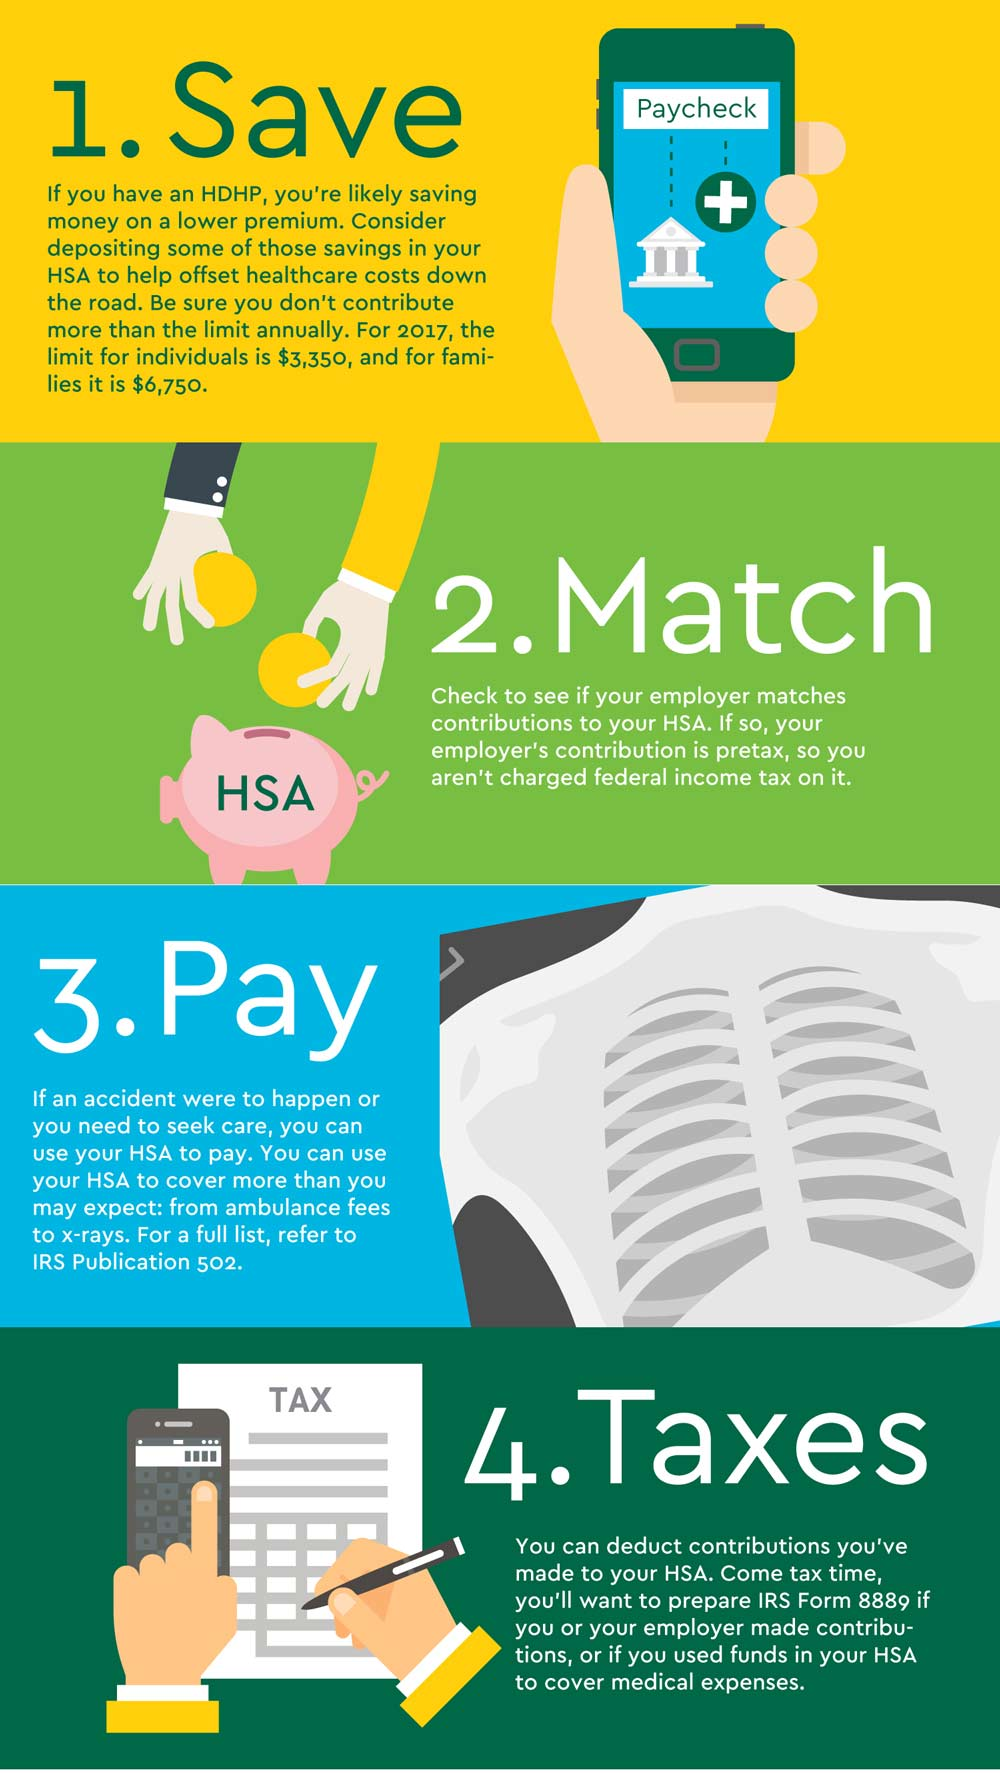 How to save using an HSA infographic.